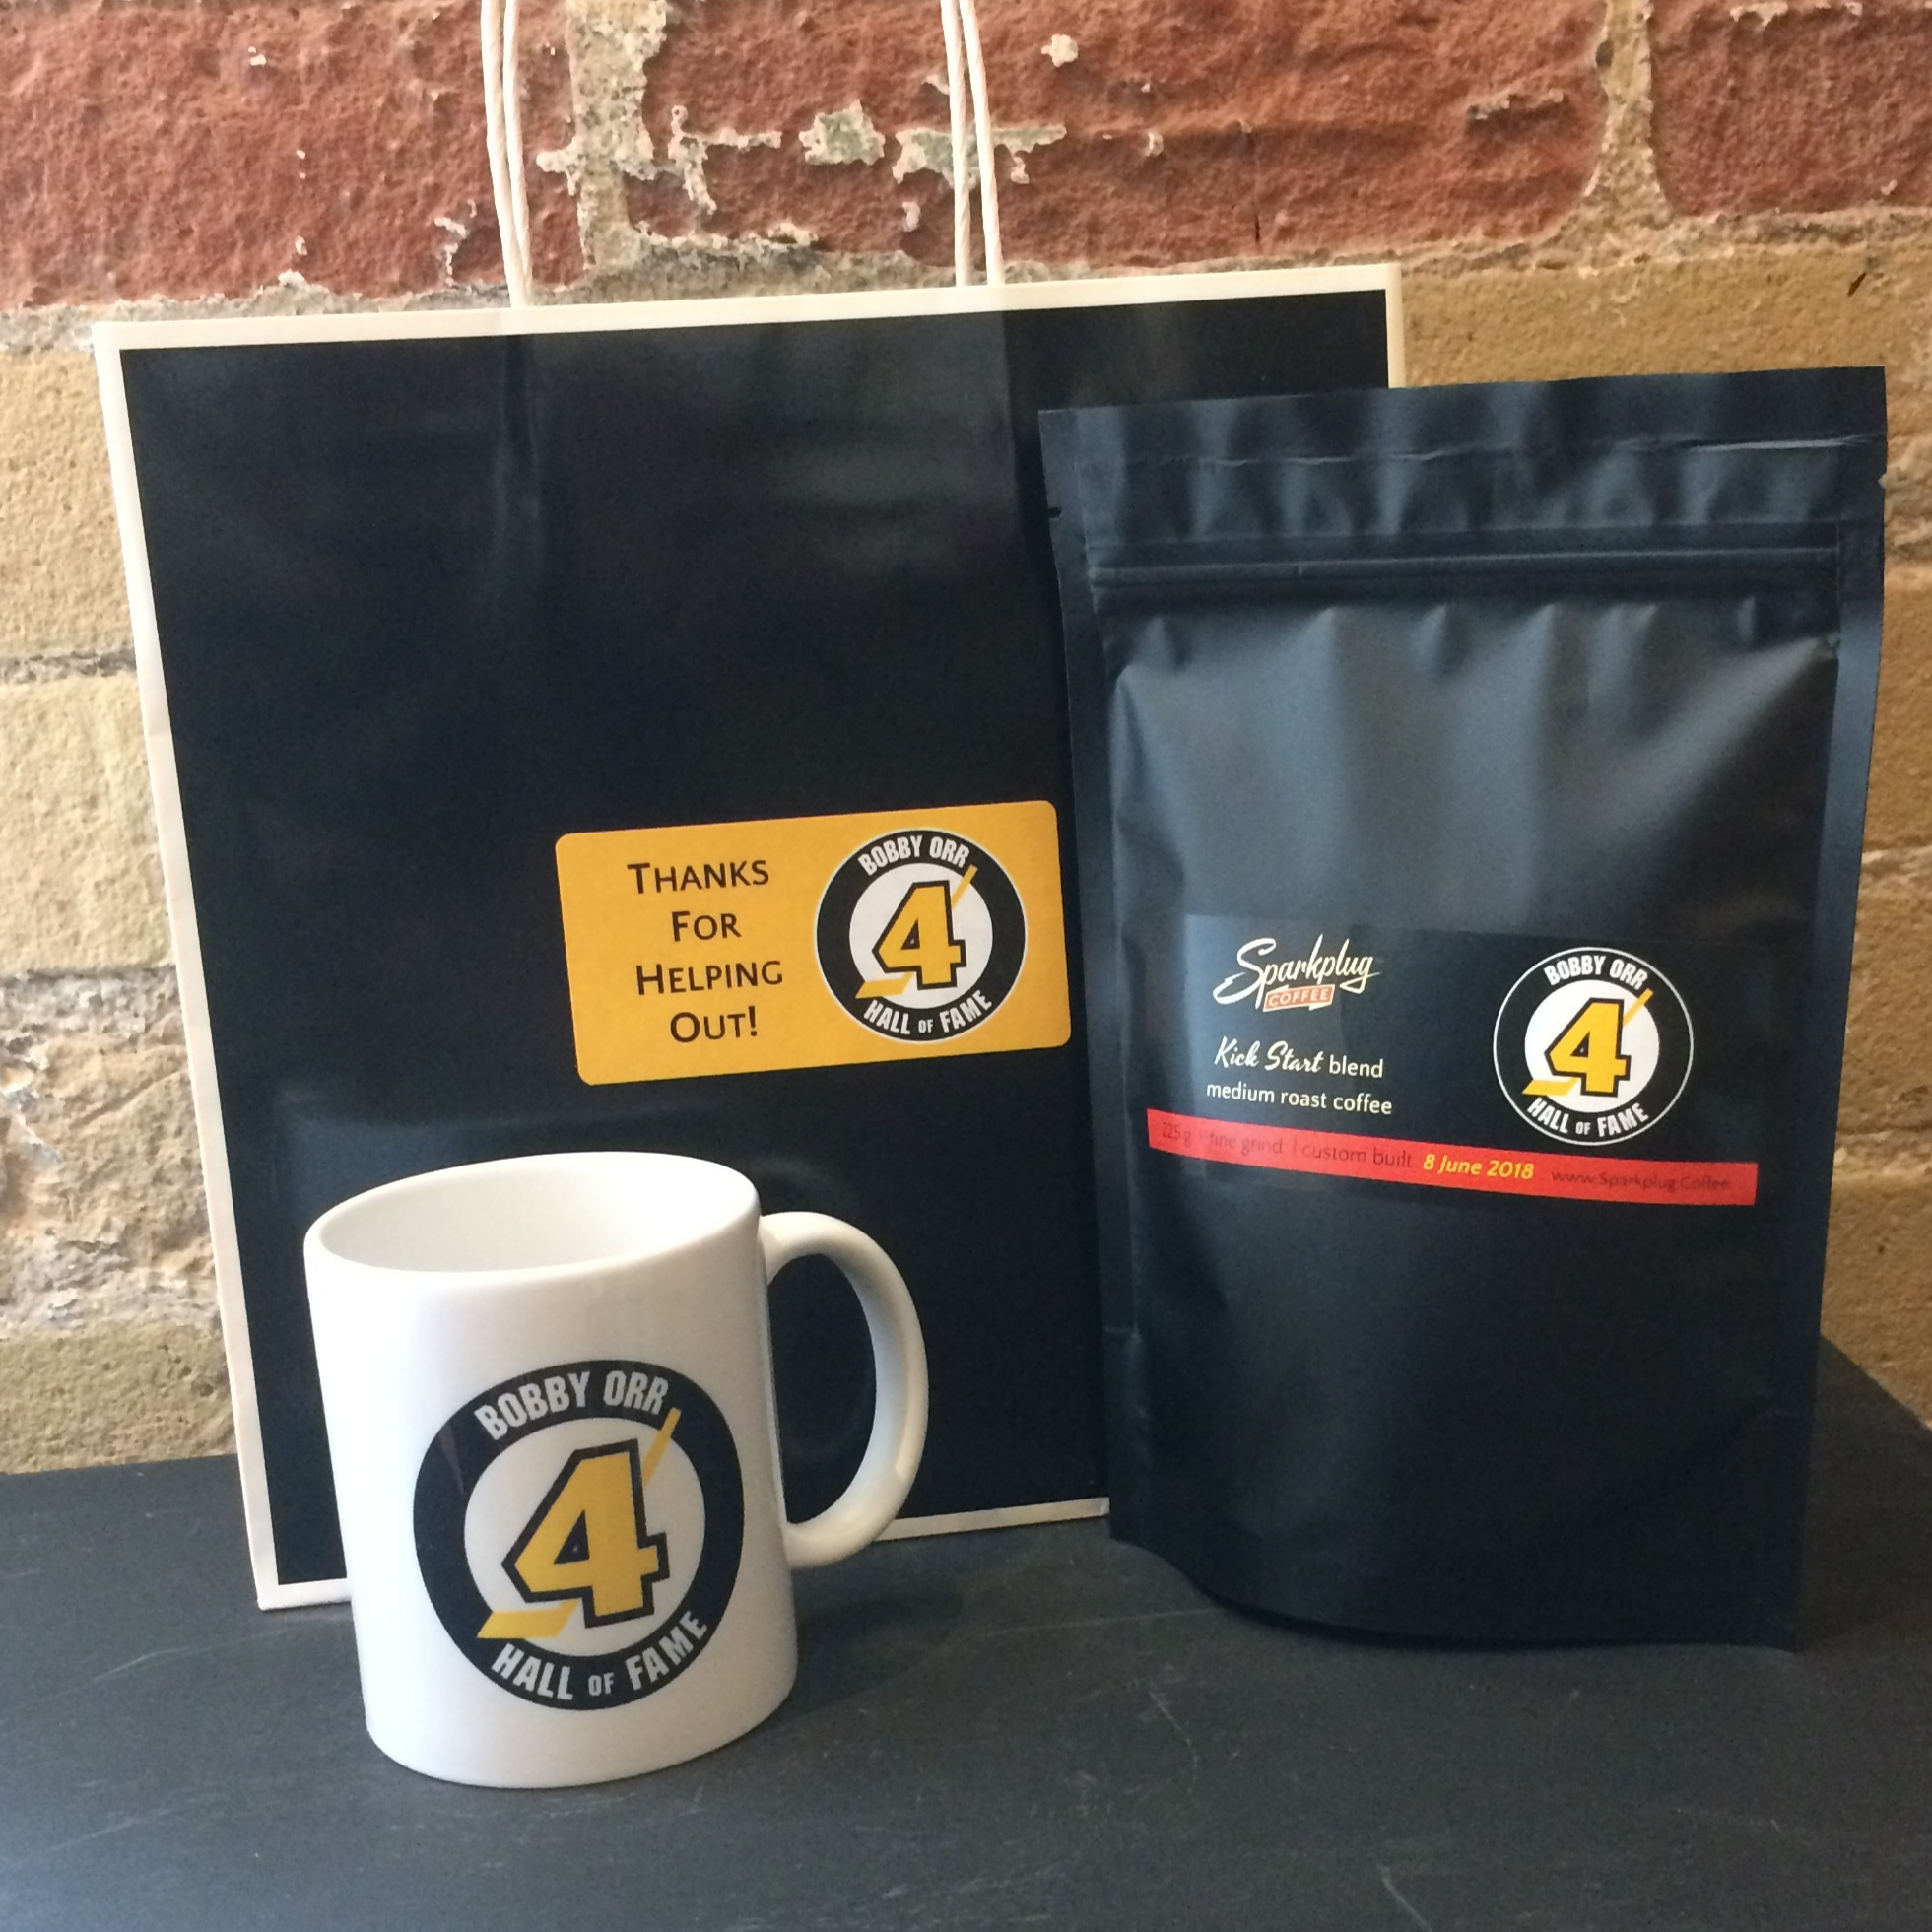 One of the fun custom gifts we delivered -   Bobby Orr Hall of Fame   custom mug and coffee.